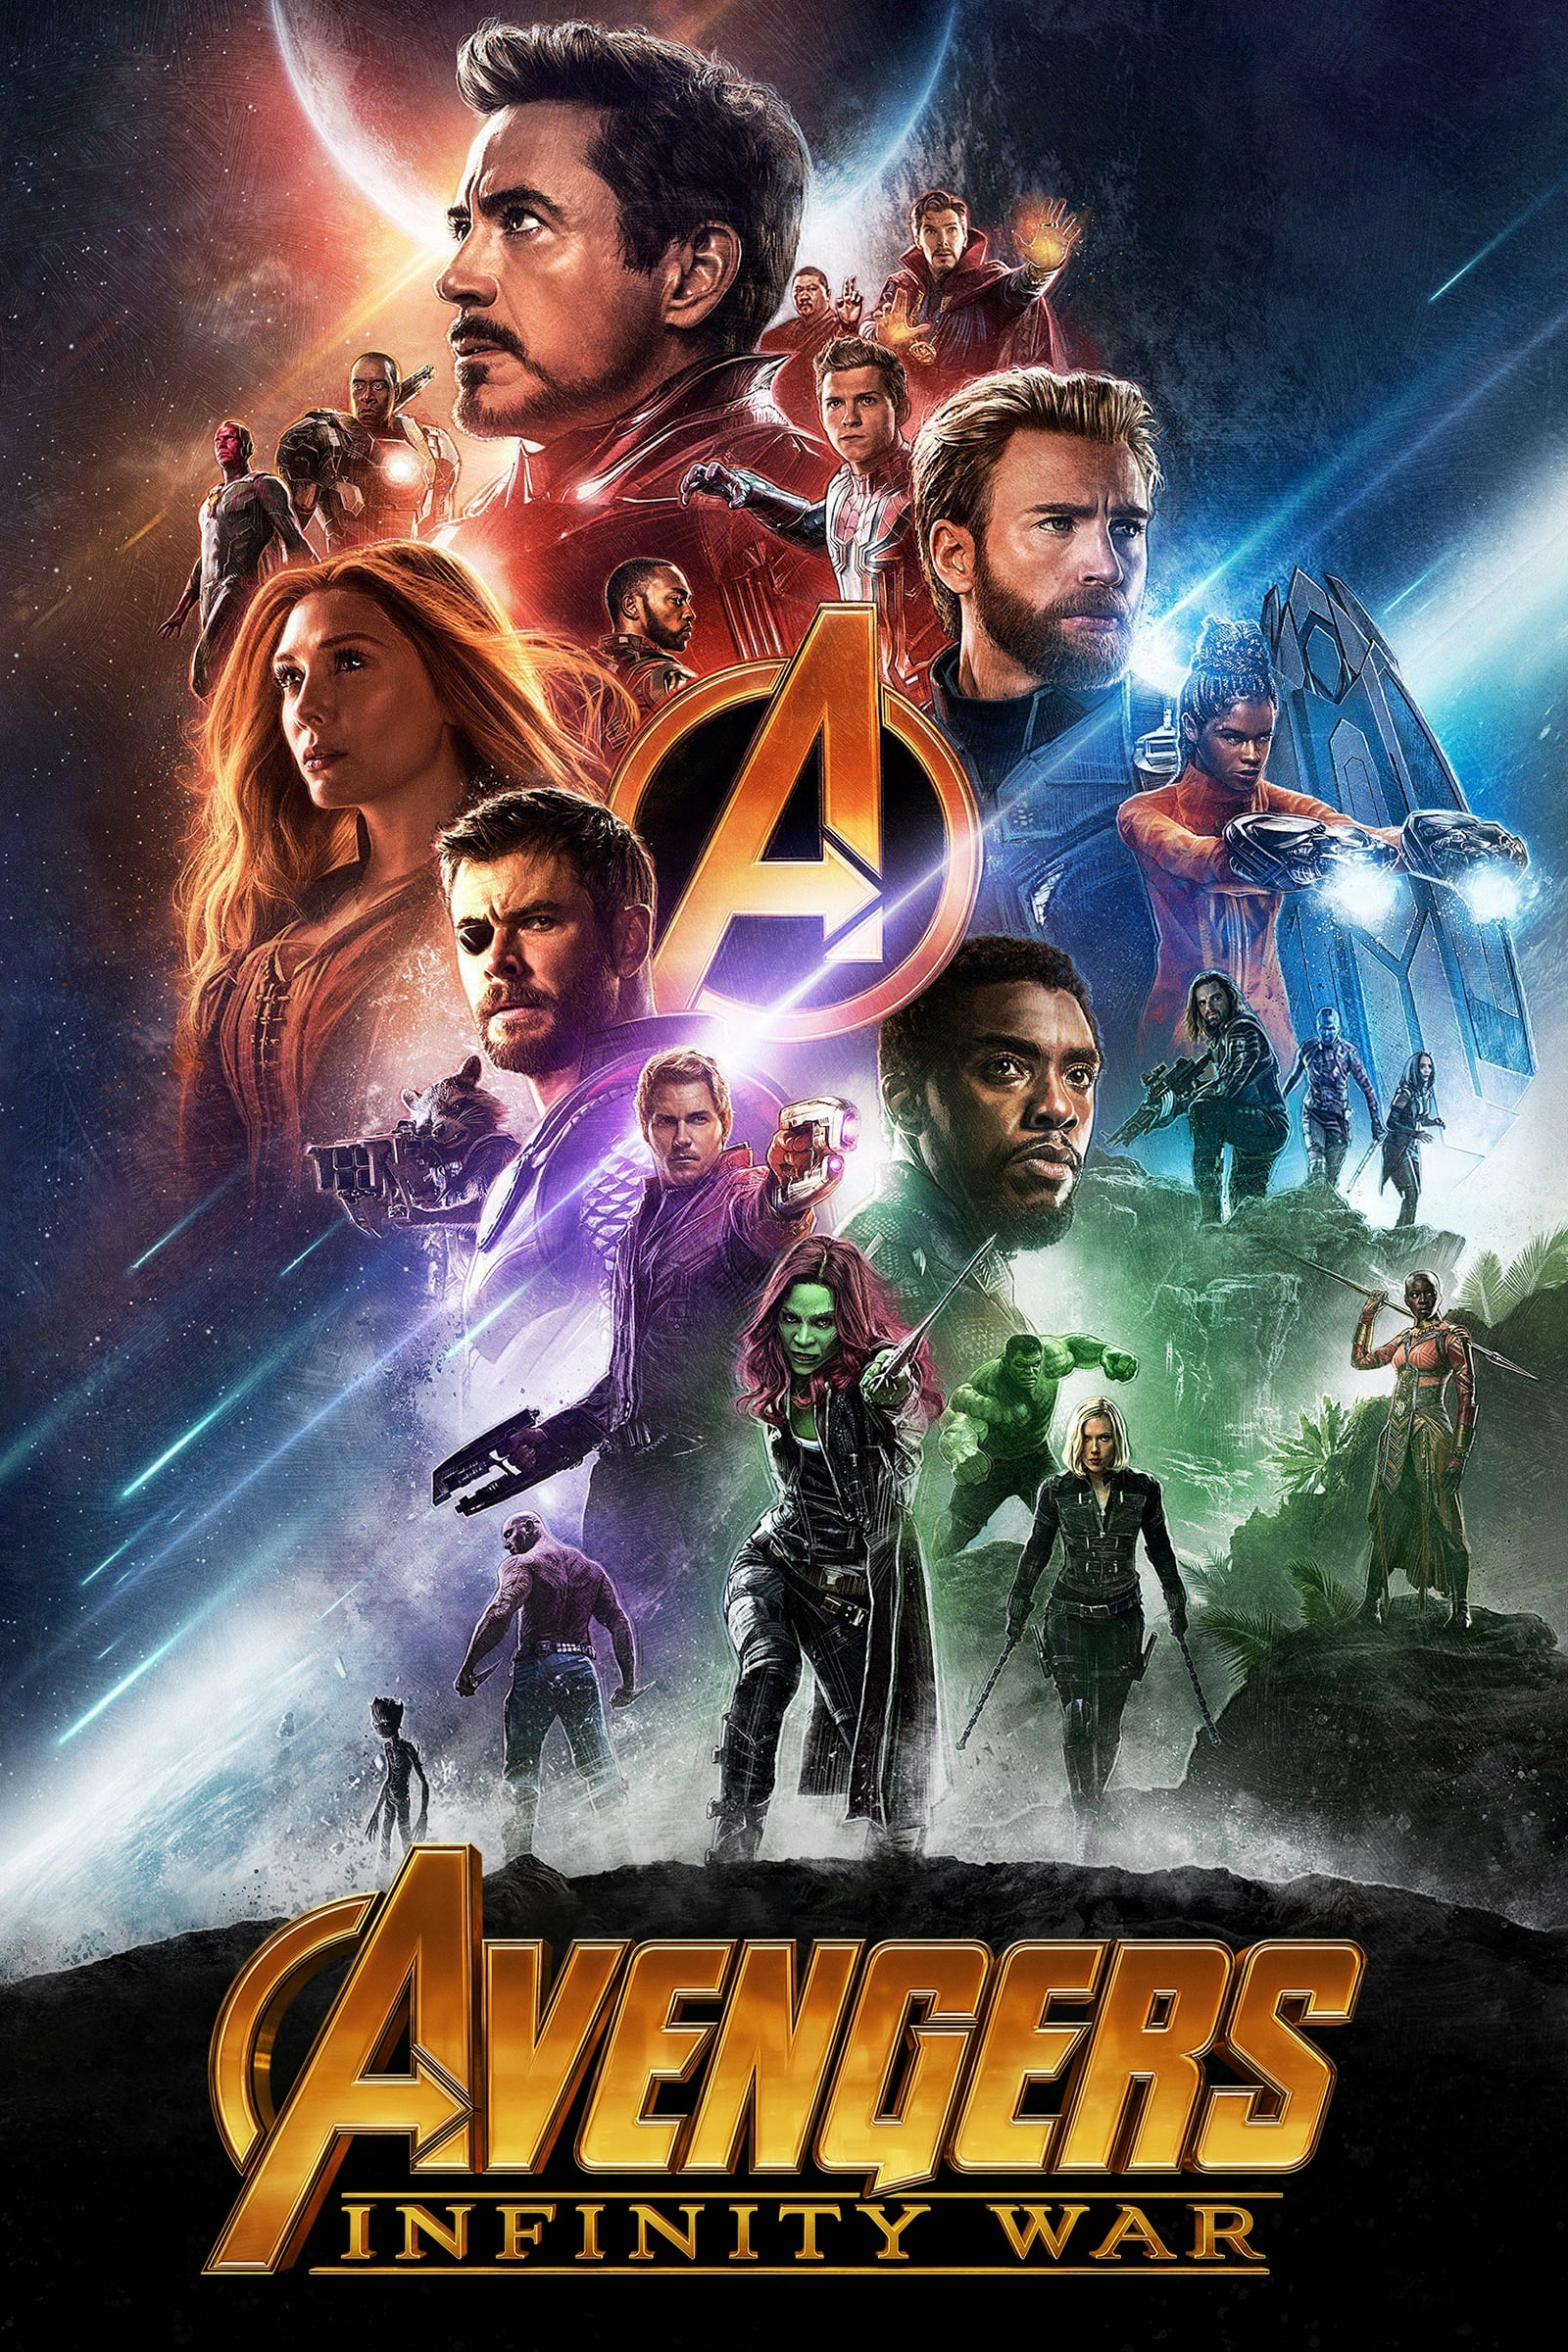 Avengers: Infinity War (2018) [Hindi 5.1+English 5.1] | x265 10Bit BluRay | 1080p | 720p | 480p | Download | Watch Online | GDrive | Direct Links